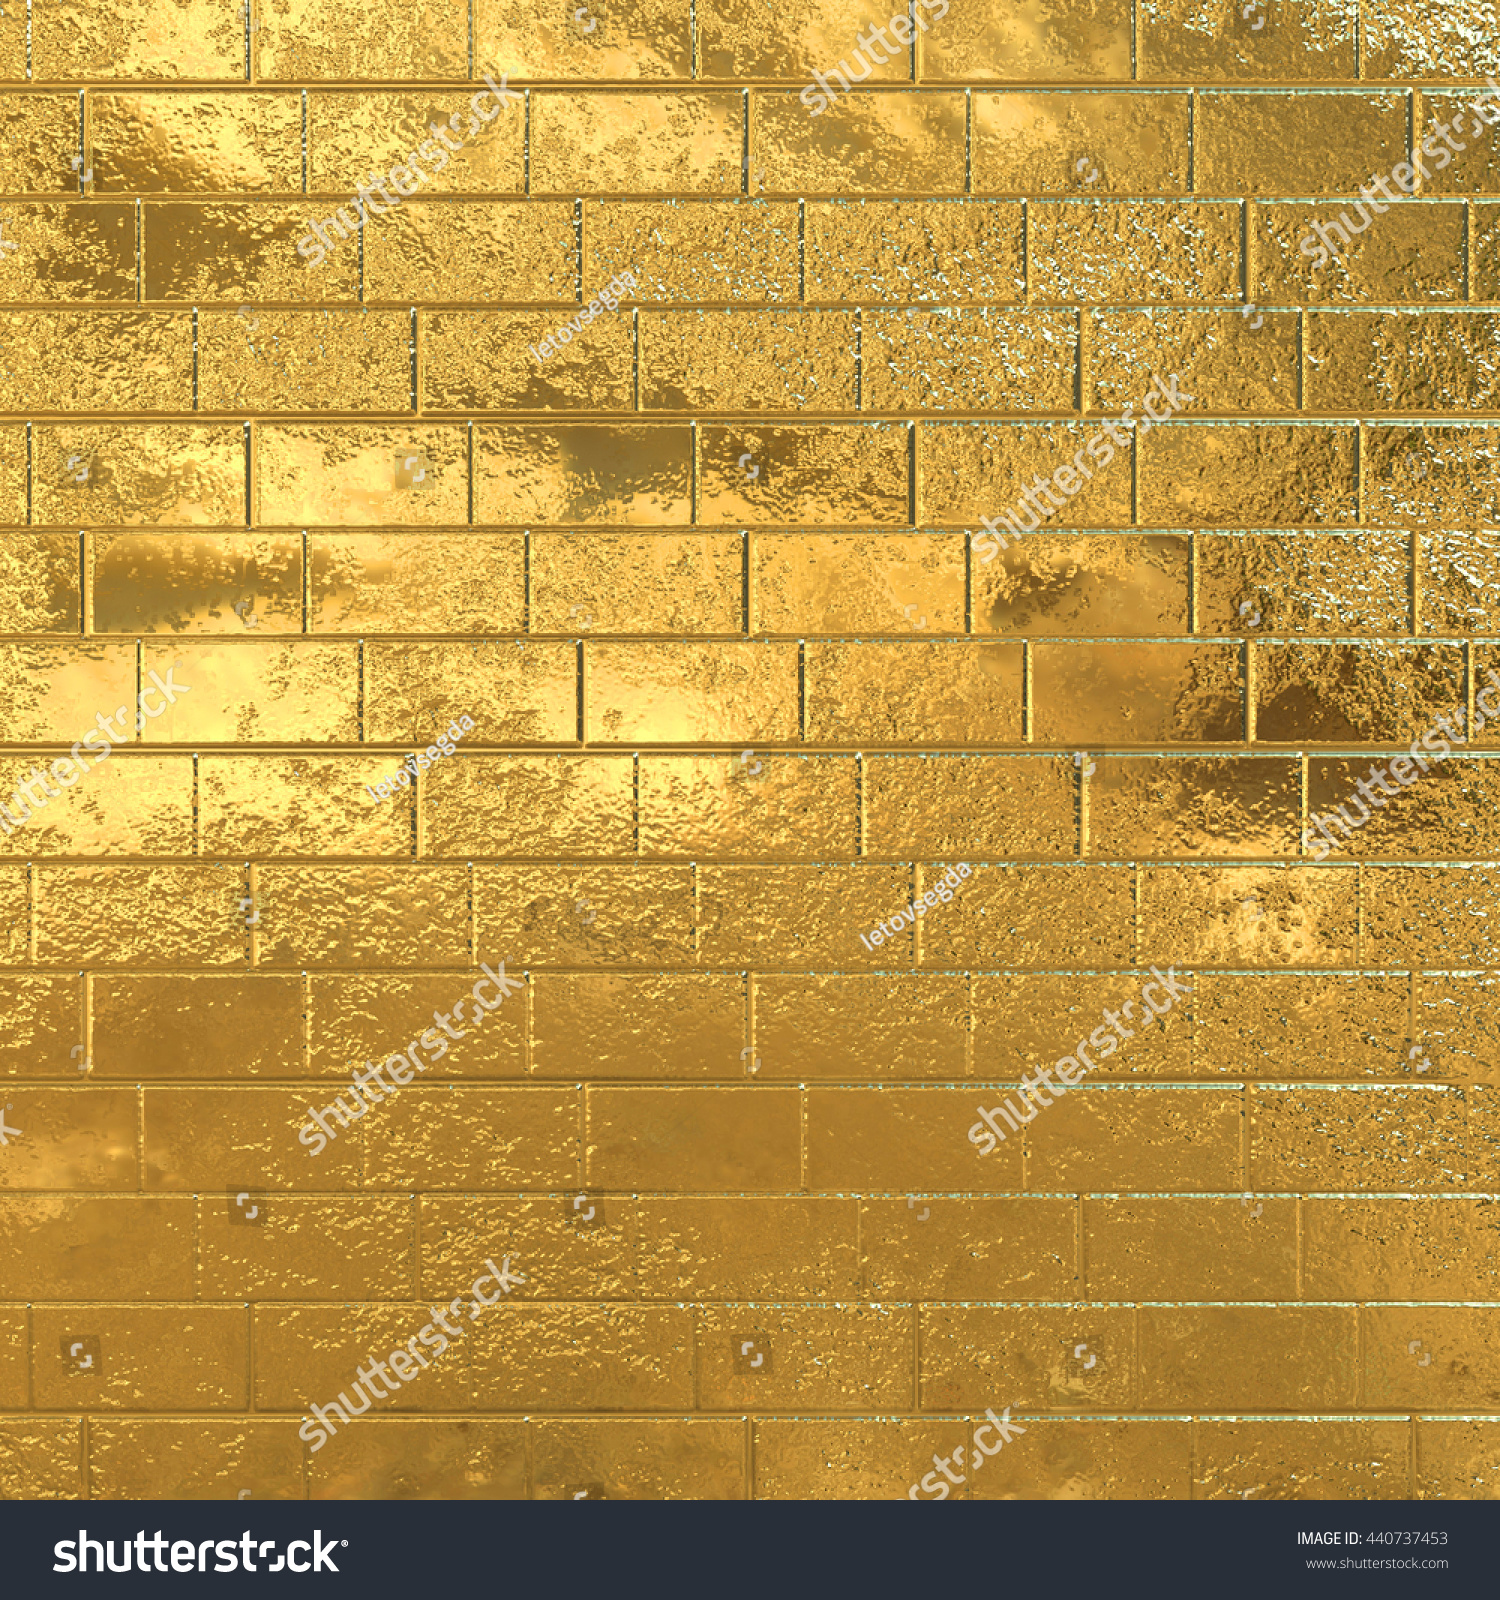 Golden Brick Wall Gold Background Stock Illustration 440737453 ...